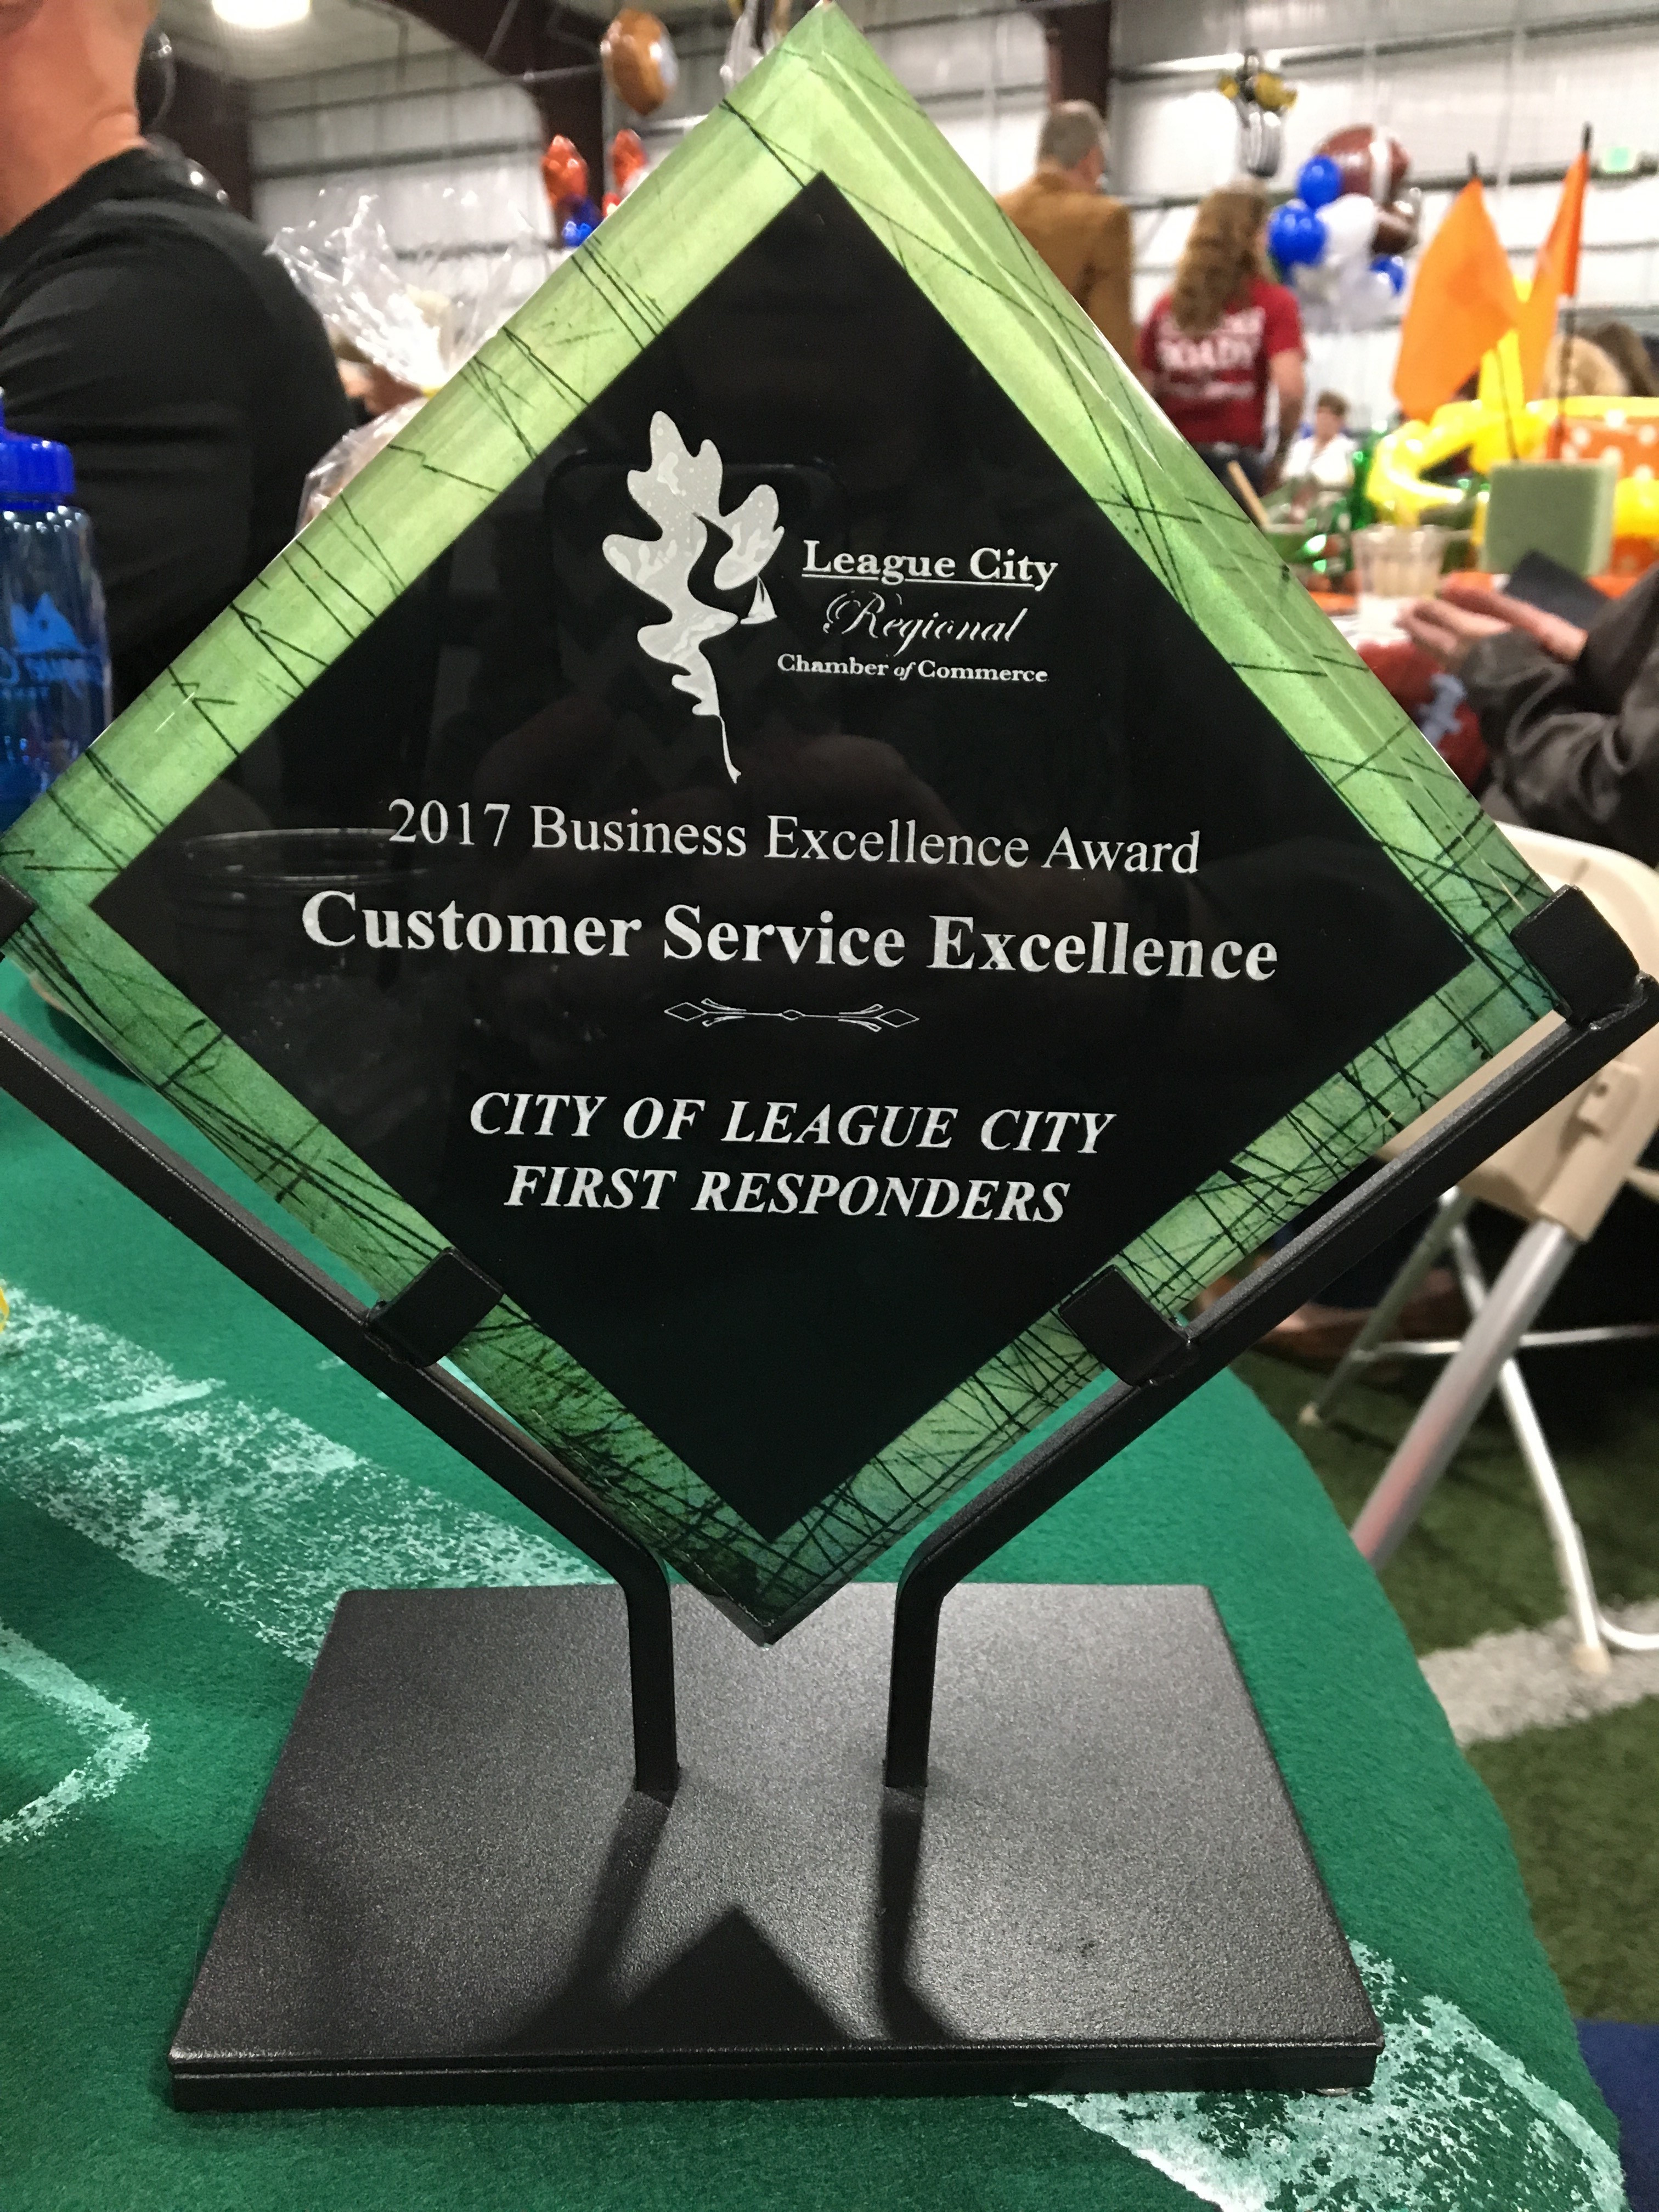 League City Regional Chamber of Commerce Award.jpg